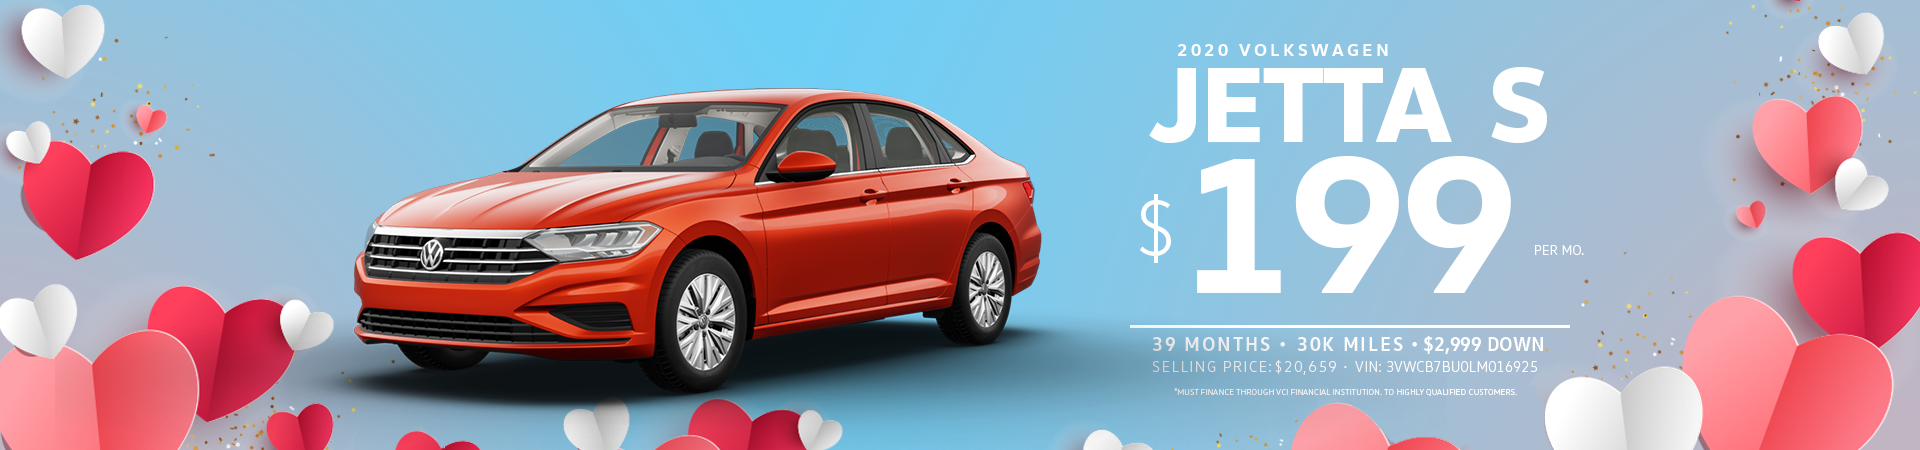 Lease a Jetta S for $199 a month